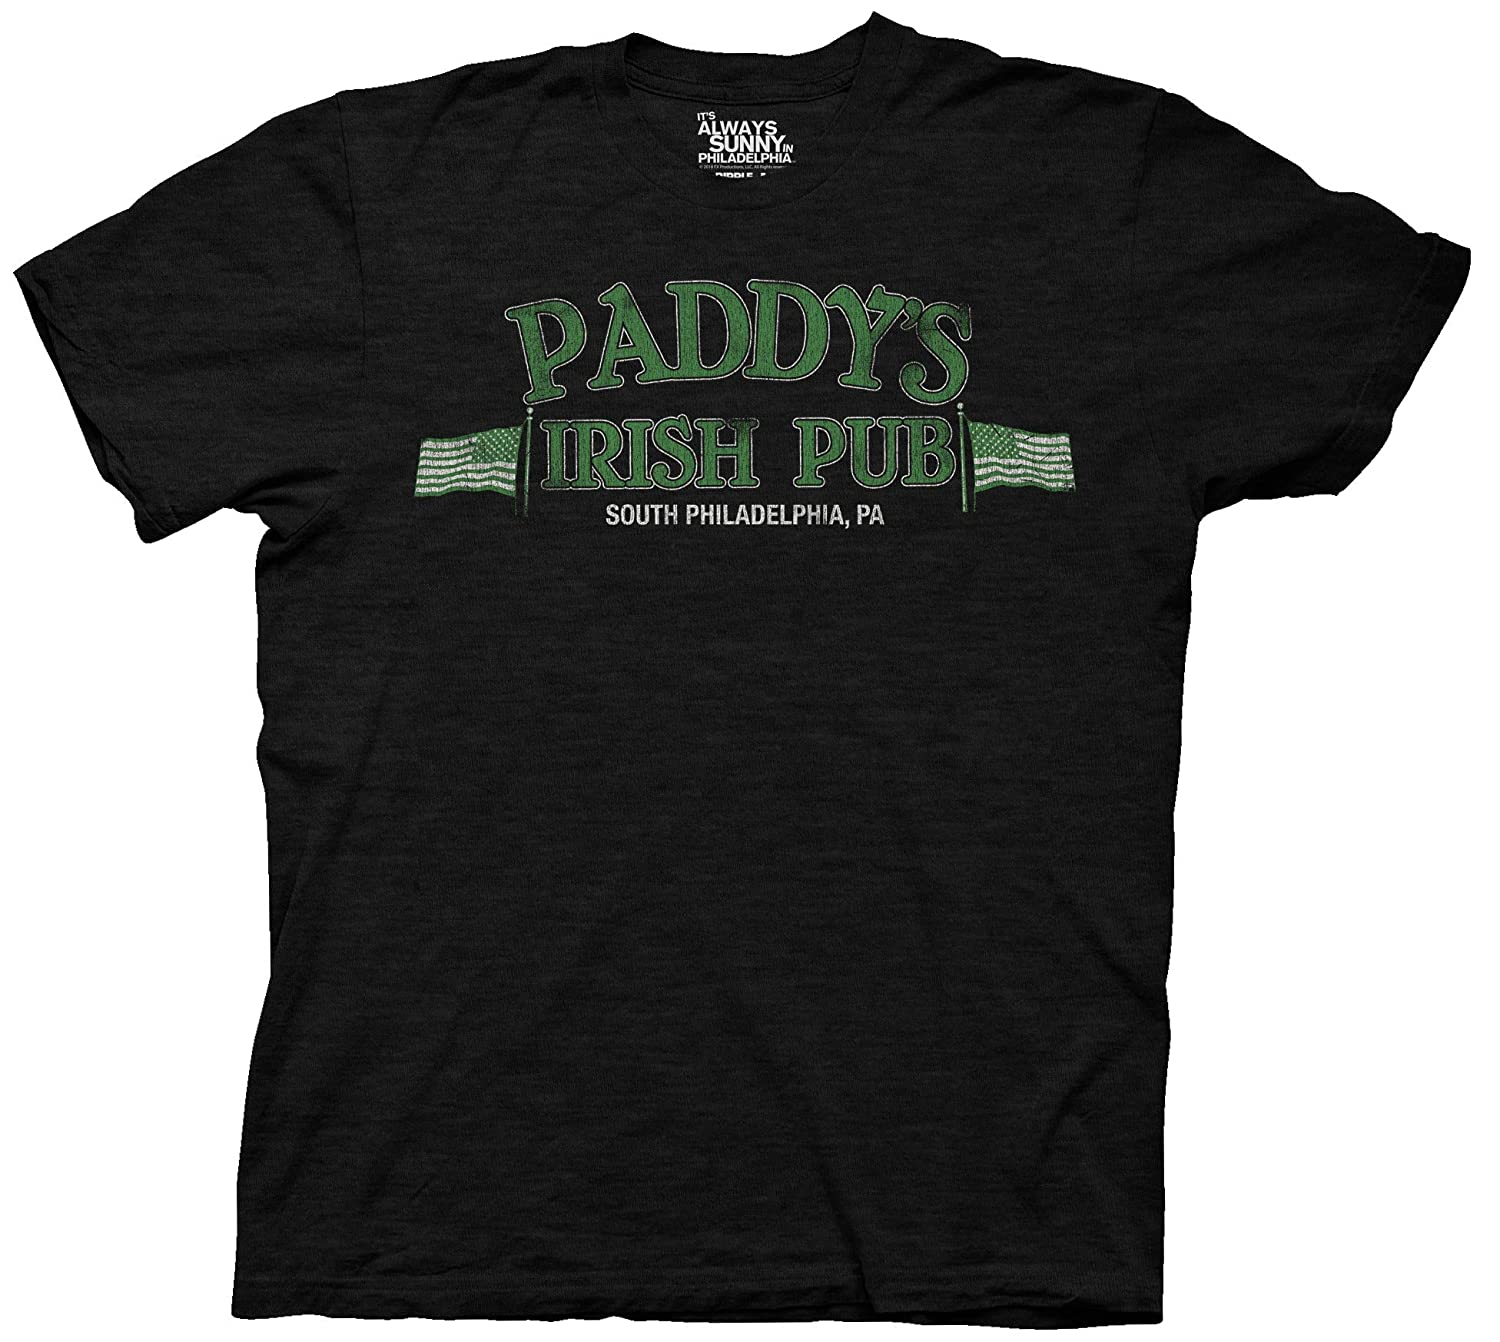 a8f4ee764 Amazon.com  Ripple Junction It s Always Sunny in Philadelphia Adult Unisex  Paddy s Irish Pub Light Weight 100% Cotton Crew T-Shirt  Clothing